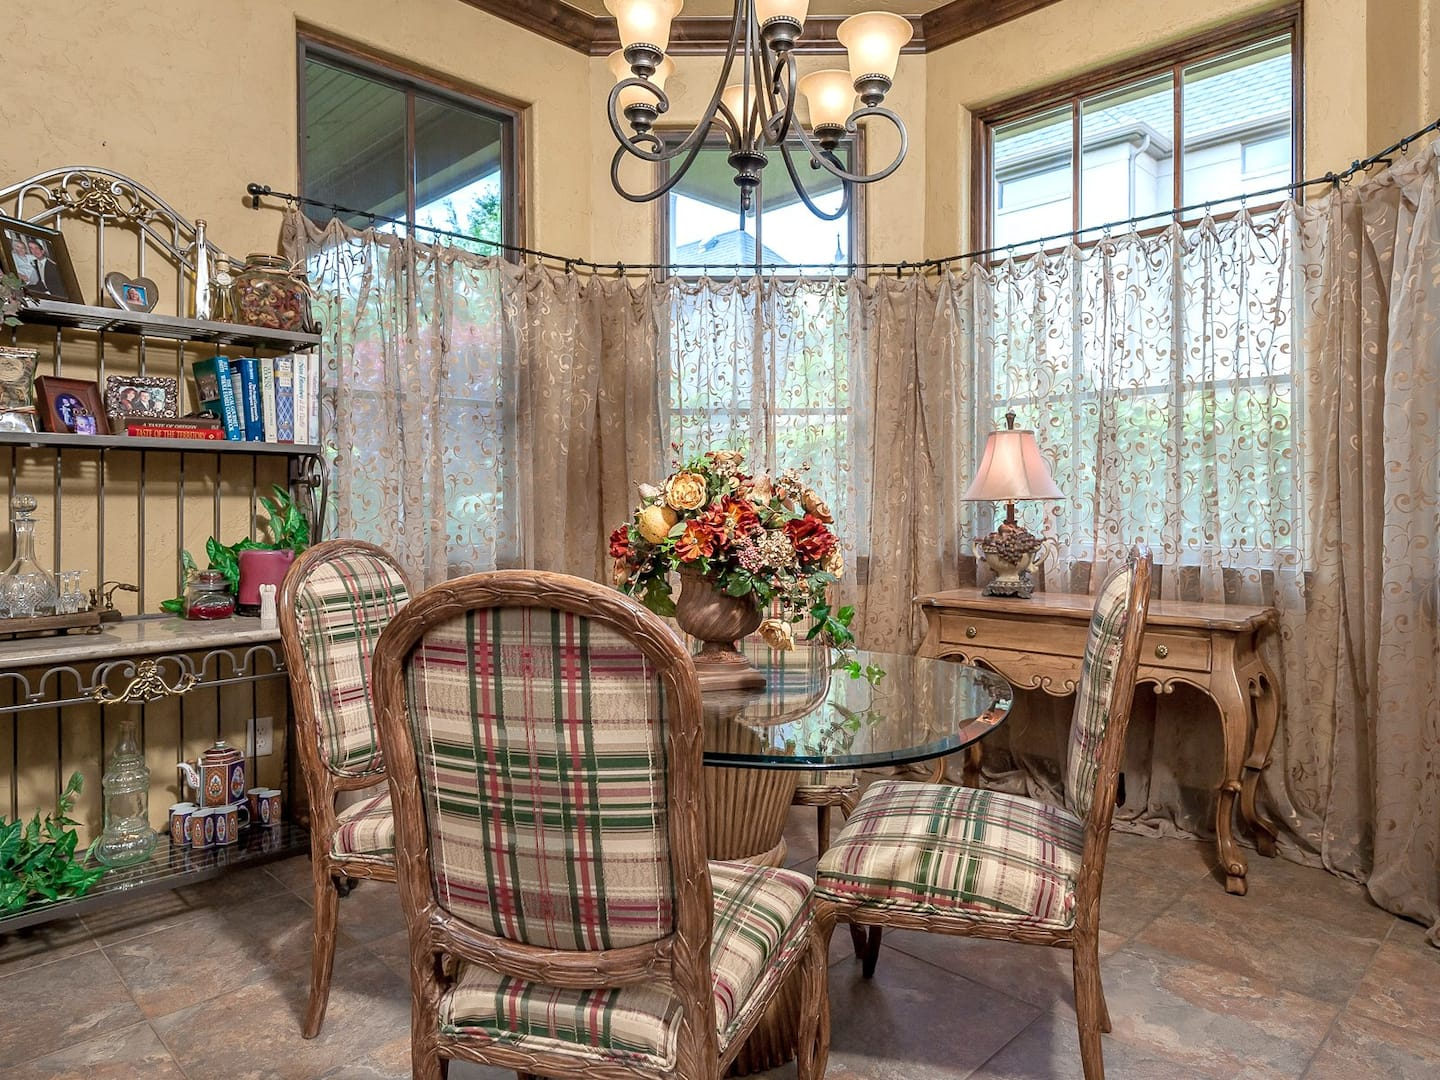 Small Country Dining Room With Sheer Floral Curtains Hung About Two Thirds  Of The Way